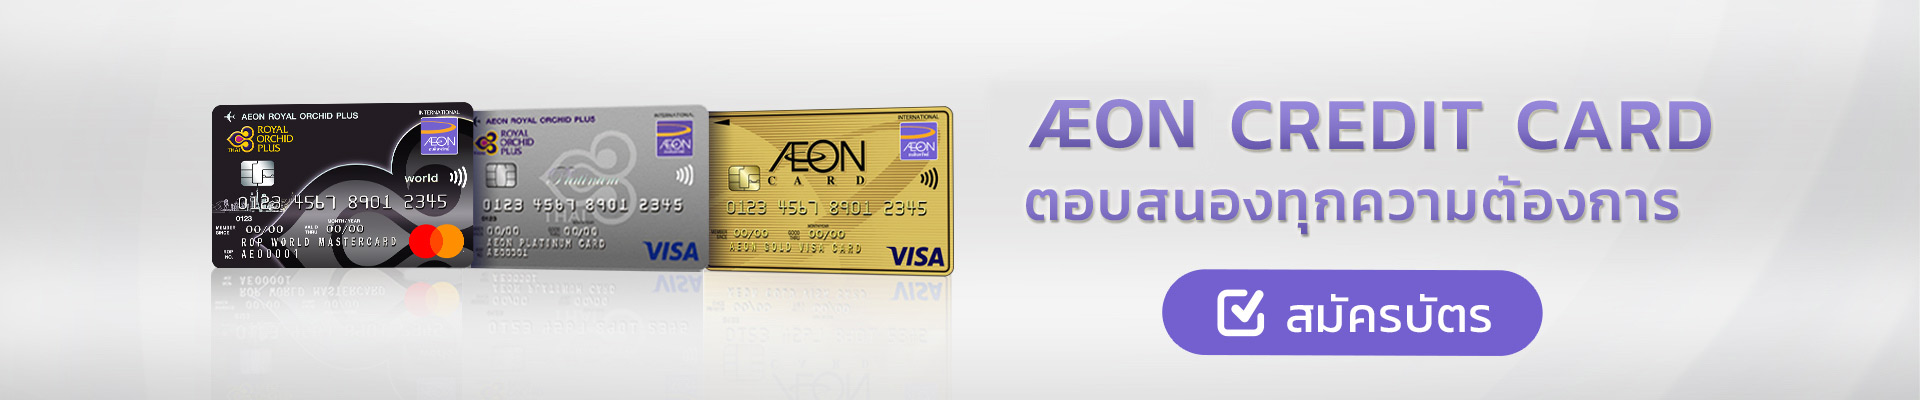 AEON CREDIT CARD